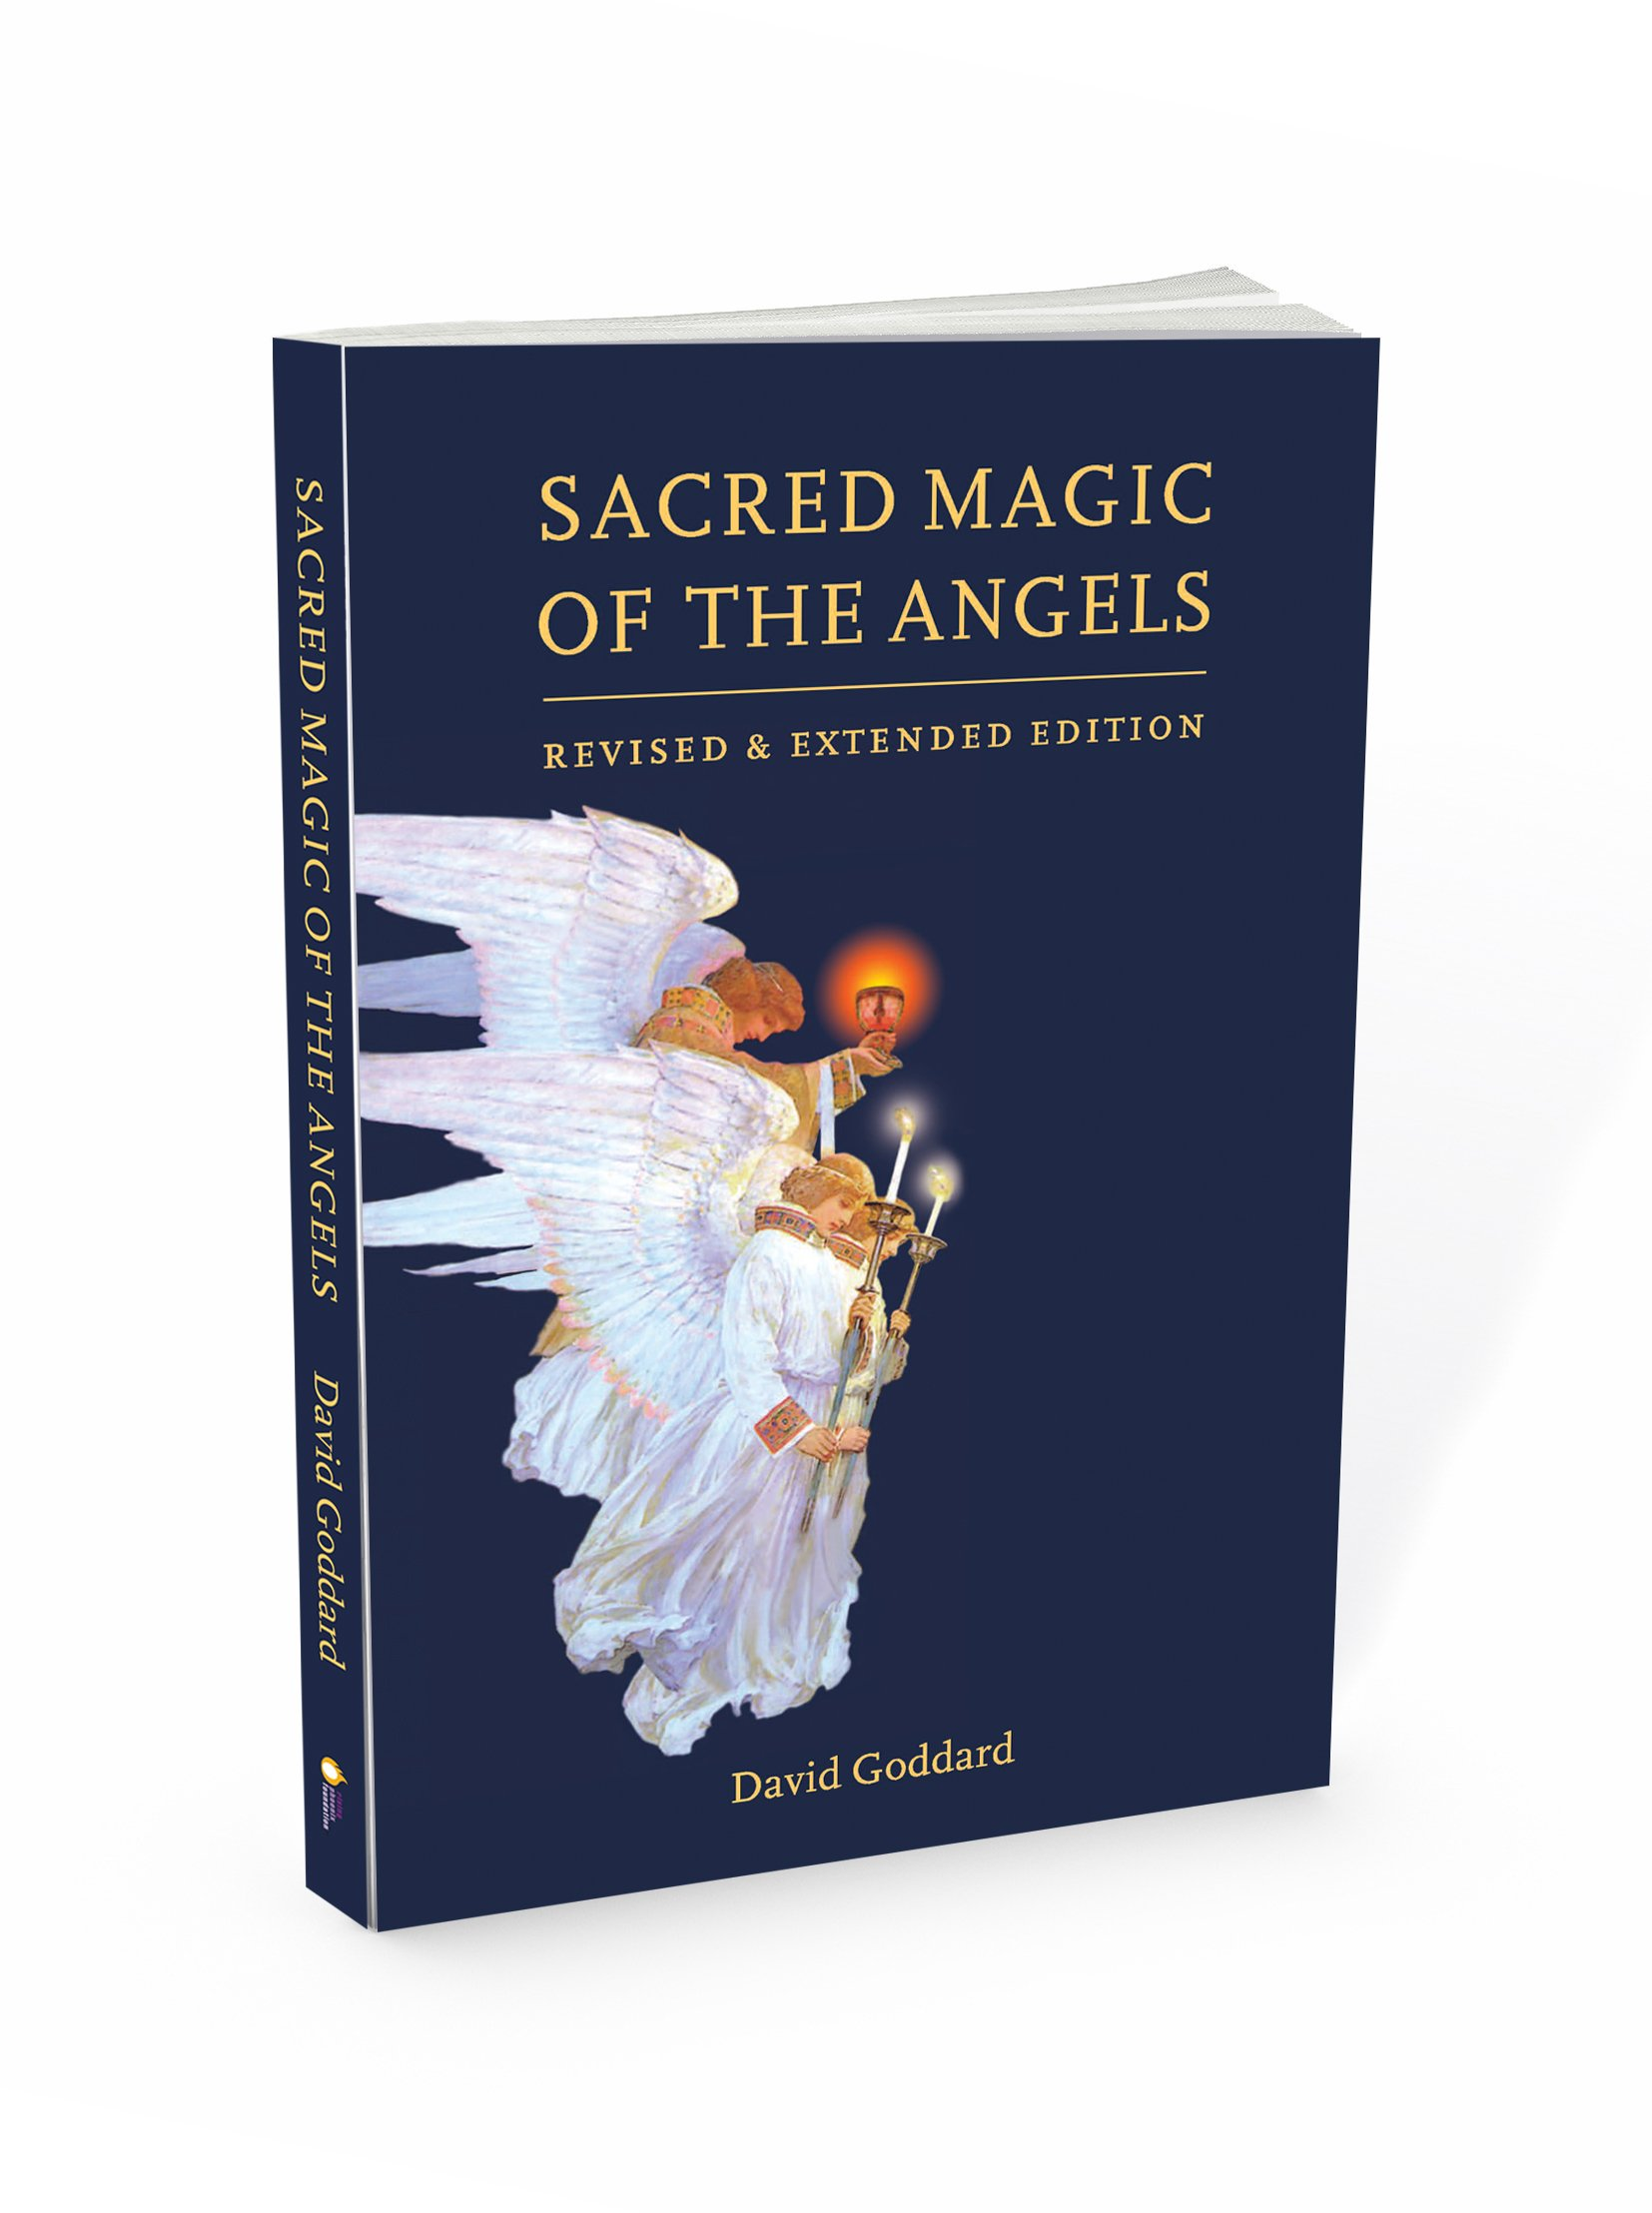 Download Sacred Magic of the Angels 2nd Expanded Edition PDF